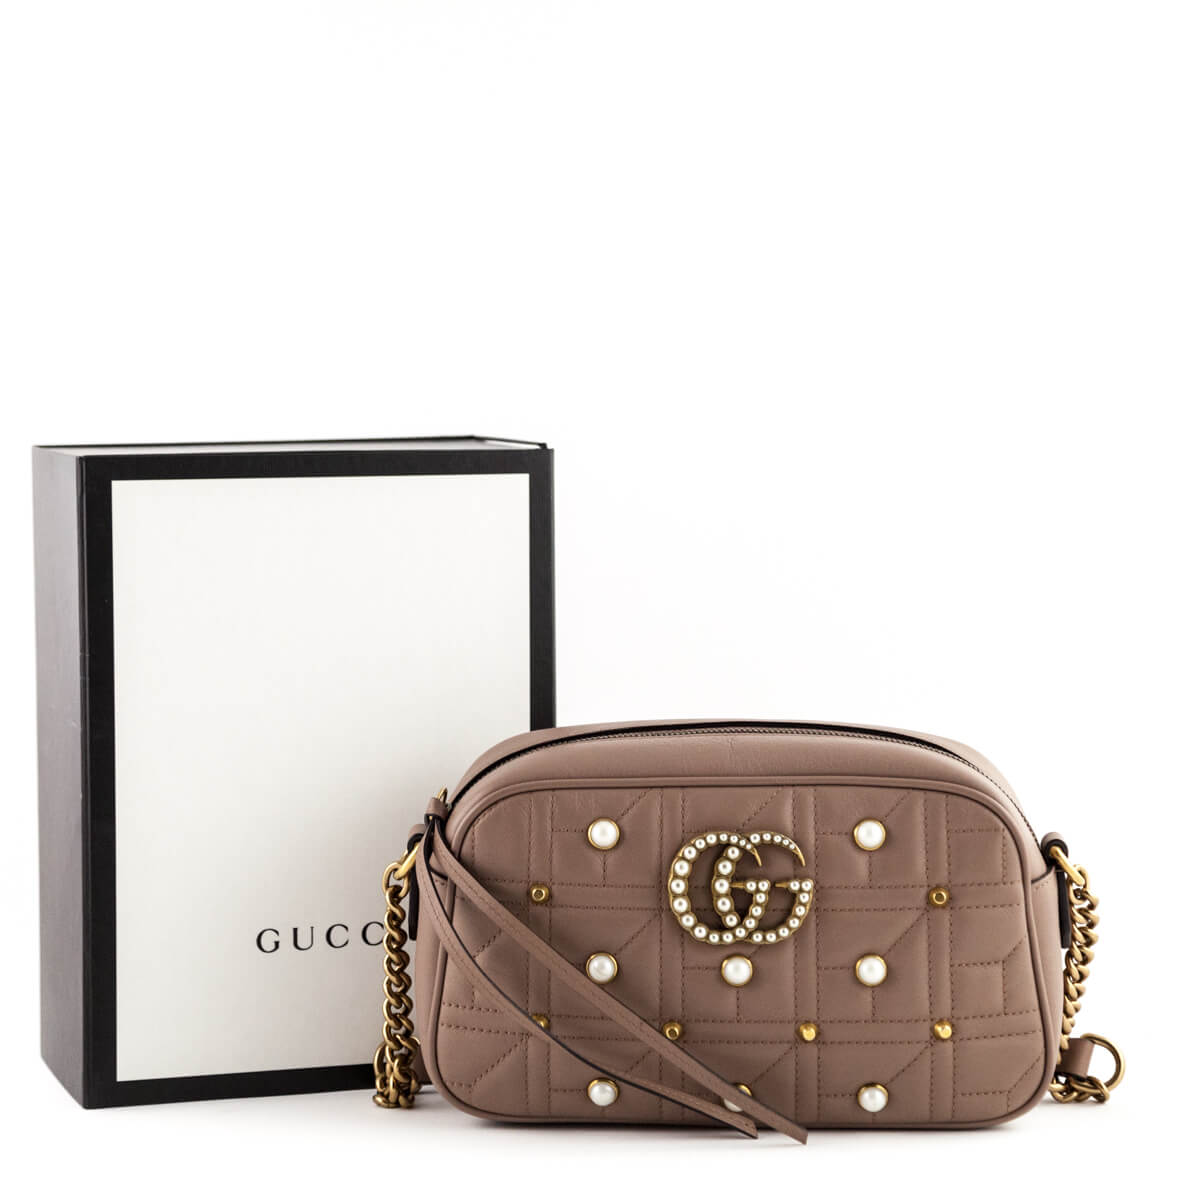 057fe9988c8 ... Gucci Nude Calfskin Matelasse Small Pearl Studded GG Marmont - LOVE  that BAG - Preowned Authentic ...